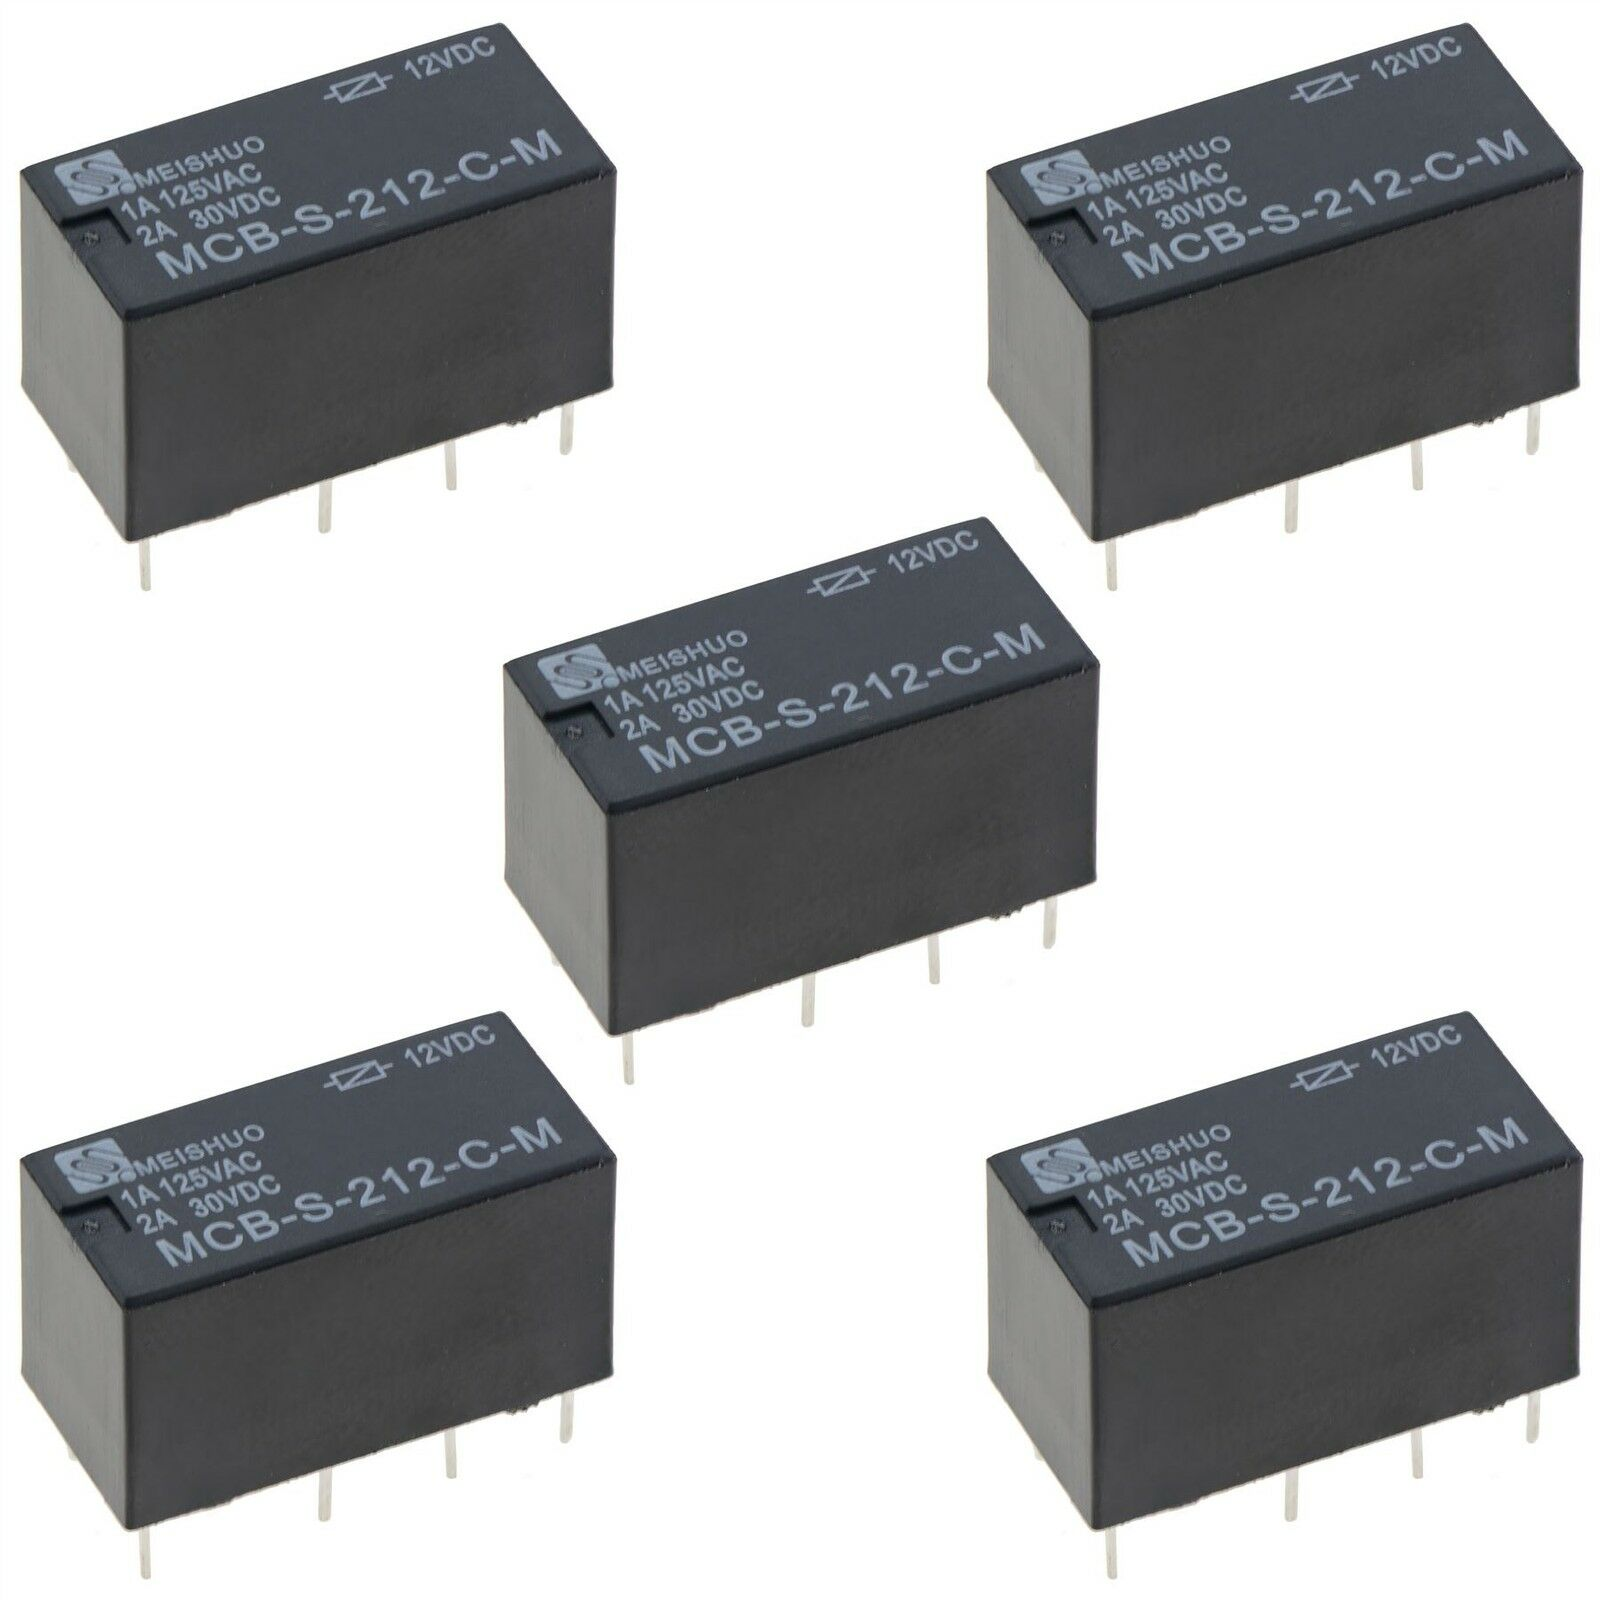 5 X Subminiature 12v Changeover Relay 2a Dpdt Eur 568 Picclick Fr Power 1 Sur 1seulement 0 Disponible